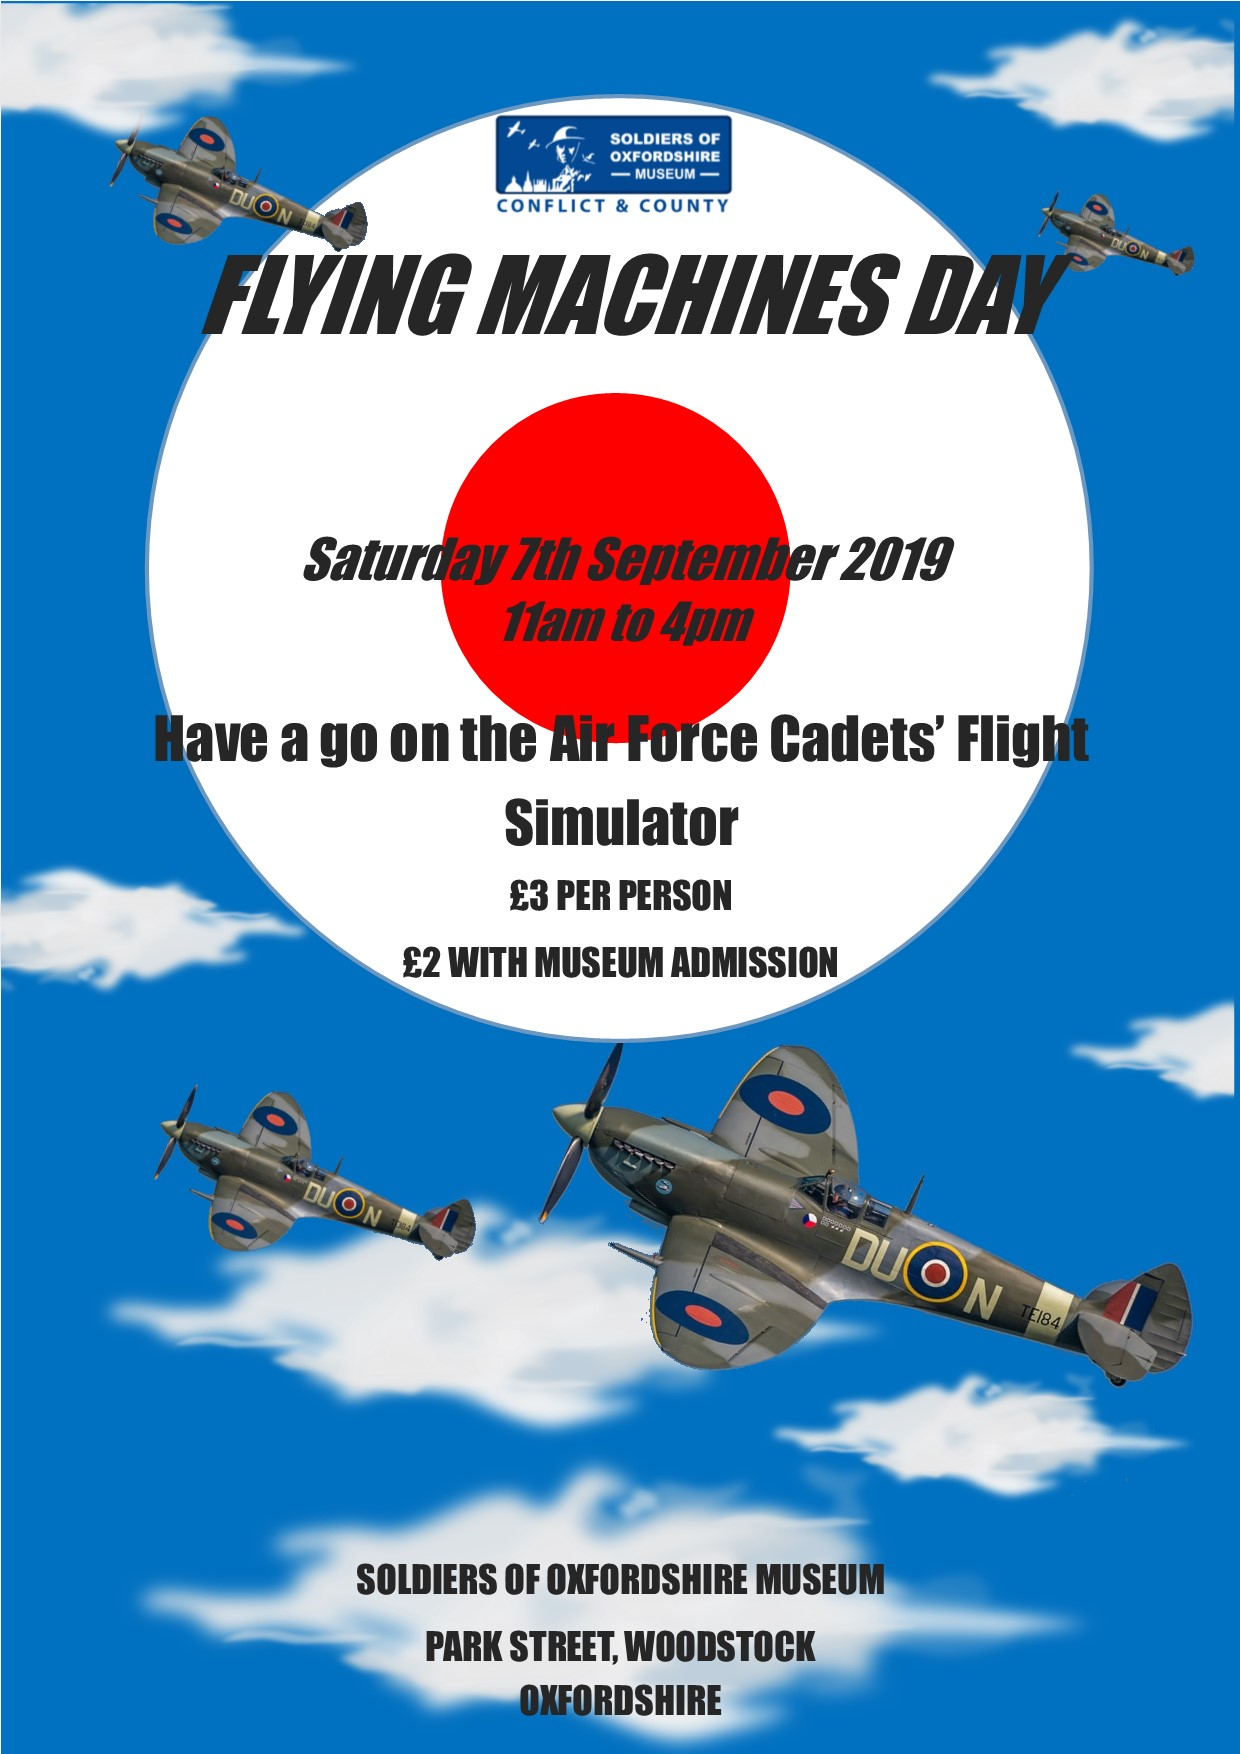 Flying Machines Day at SOFO Museum